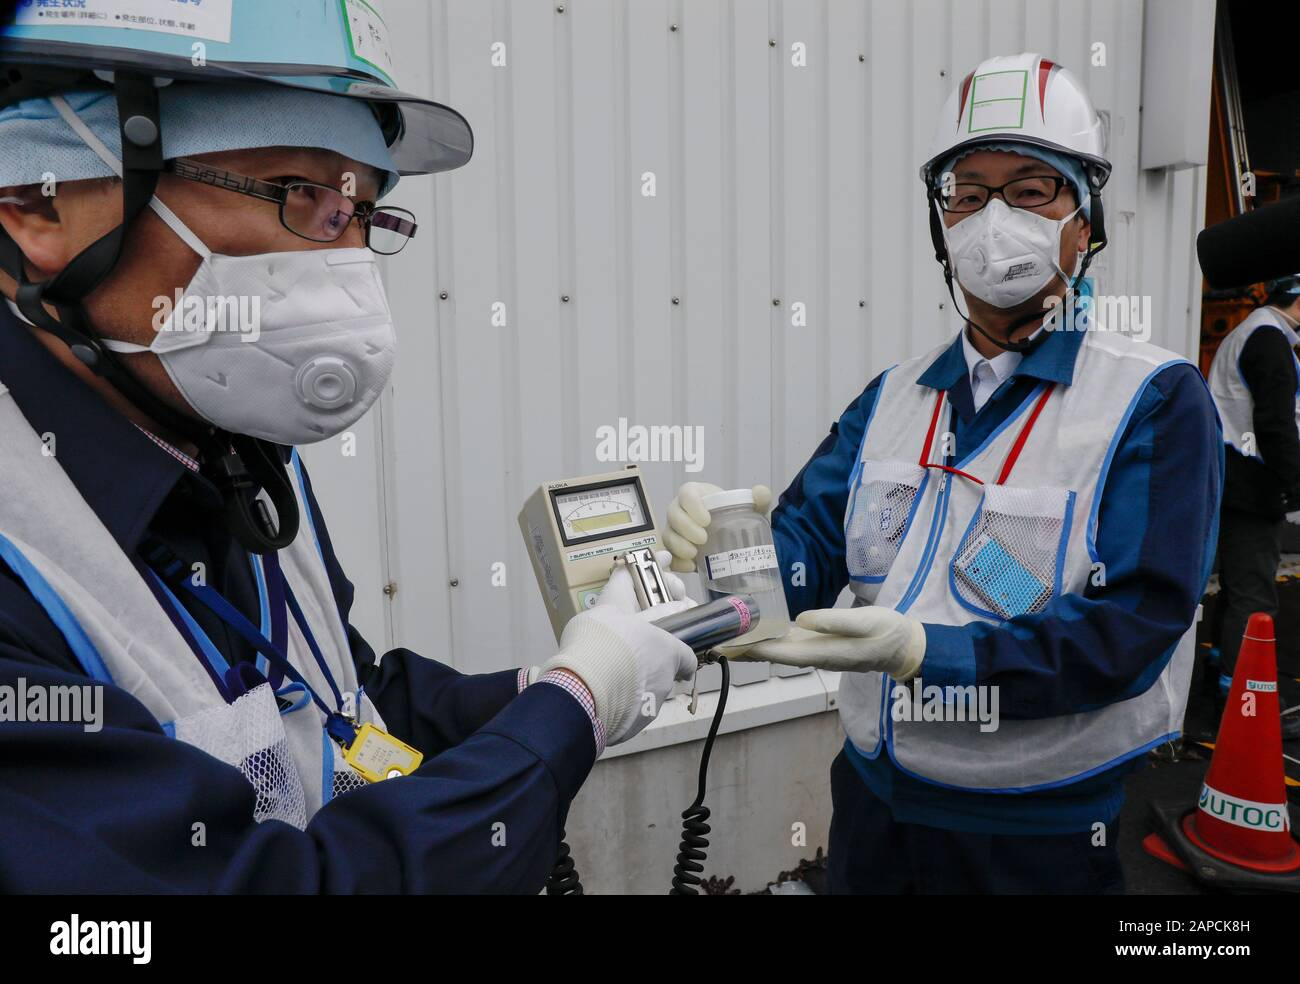 January 22, 2020, Okuma, Fukushima, Japan: Workers of  Tokyo Electric Power Company (TEPCO) Fukushima Daiichi Nuclear Power Plant demonstrate to measure radiation of water processed in ALPS(Multi-nuclide retrieval equipment) II in front of the ALPS II building at the tsunami-devastated nuclear power plant in Okuma town, Fukushima Prefecture, 22 January 2020. The storage tanks including water processed in the ALPS will be full around summer of 2022, TEPCO has told. Japanese government will need to decide soon how manage the processed water still including tritium.  (Credit Image: © Kimimasa May Stock Photo